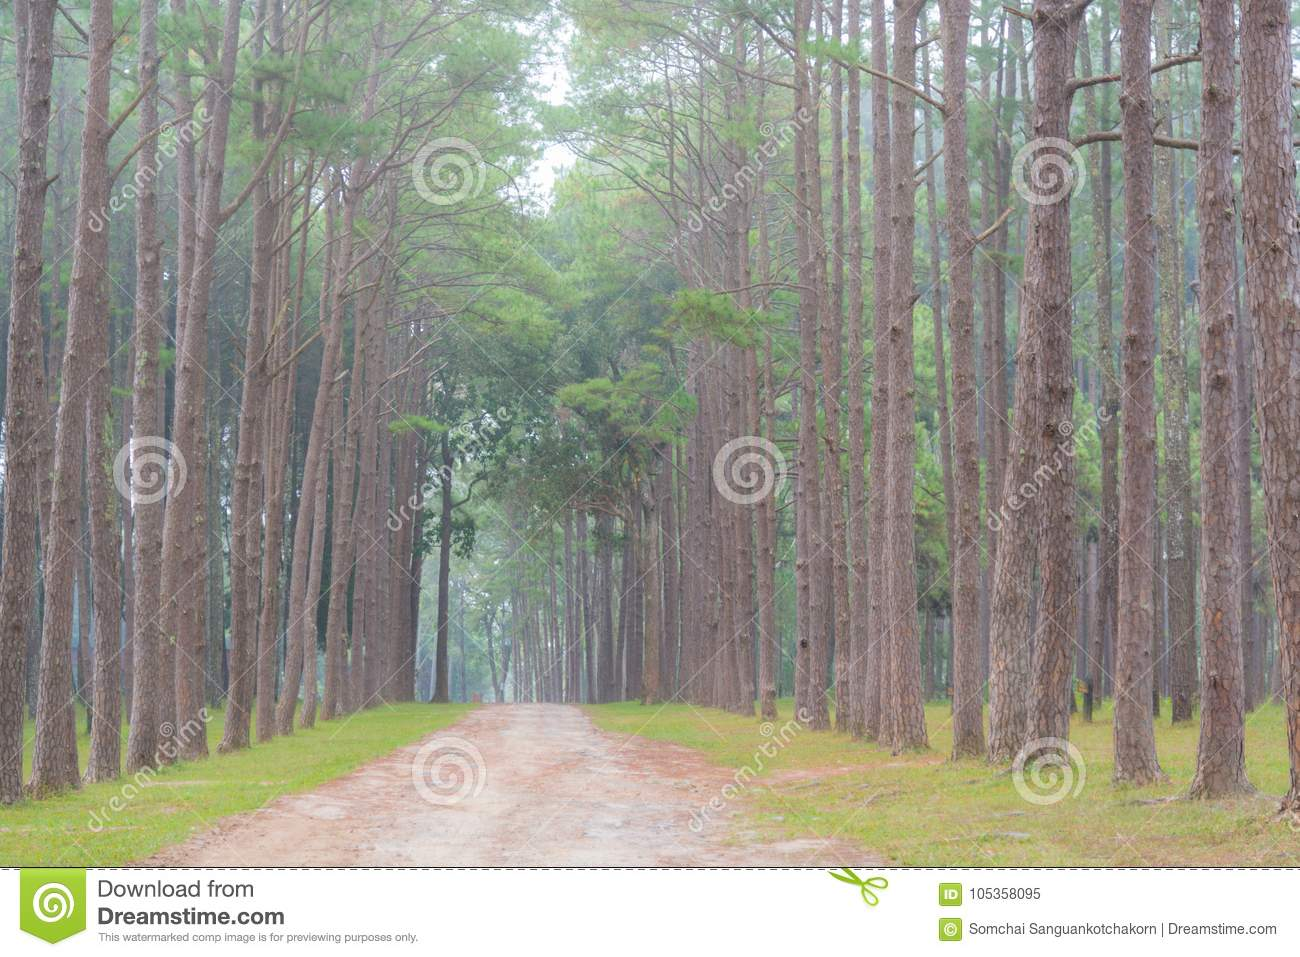 Garden of pine trees with foggy environment